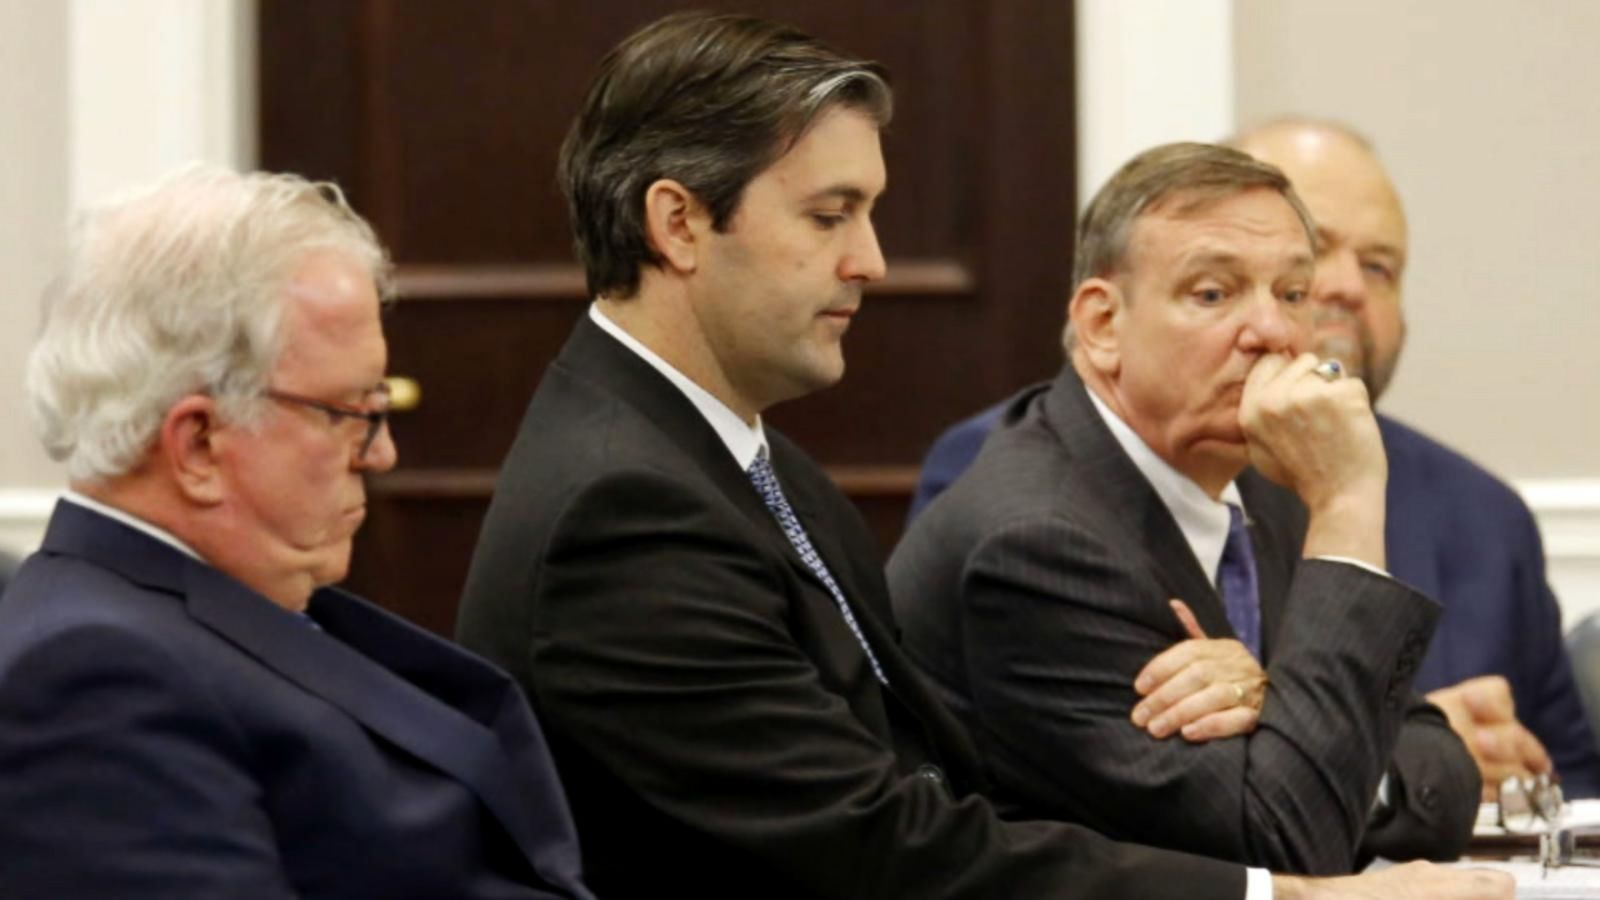 VIDEO: Outrage Grows Over Michael Slager Mistrial